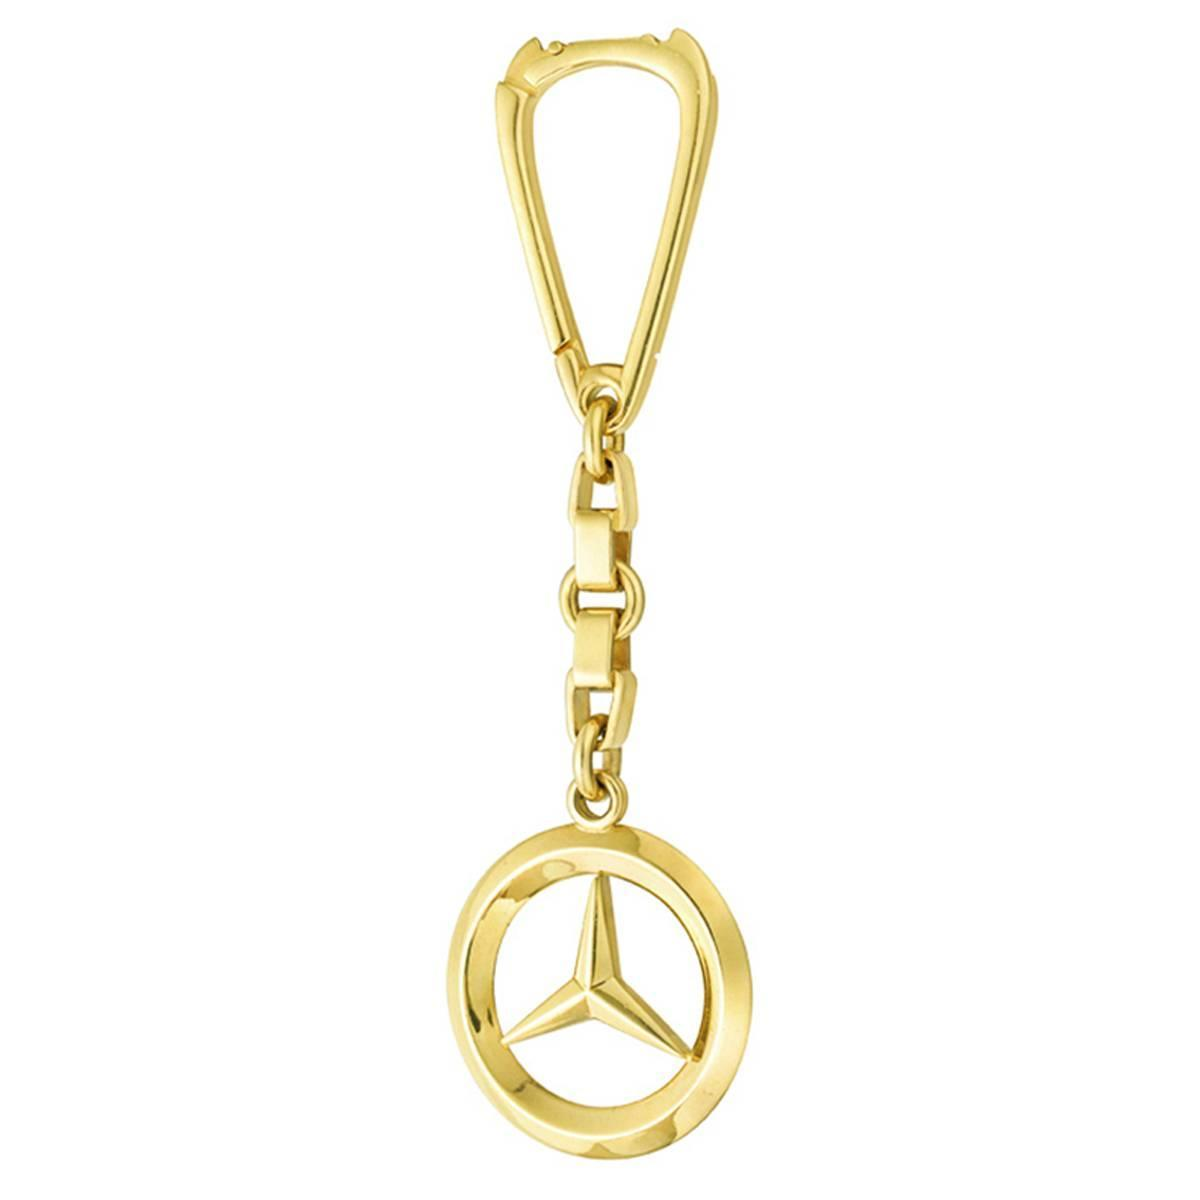 Gold mercedes benz key chain at 1stdibs for Mercedes benz key chain